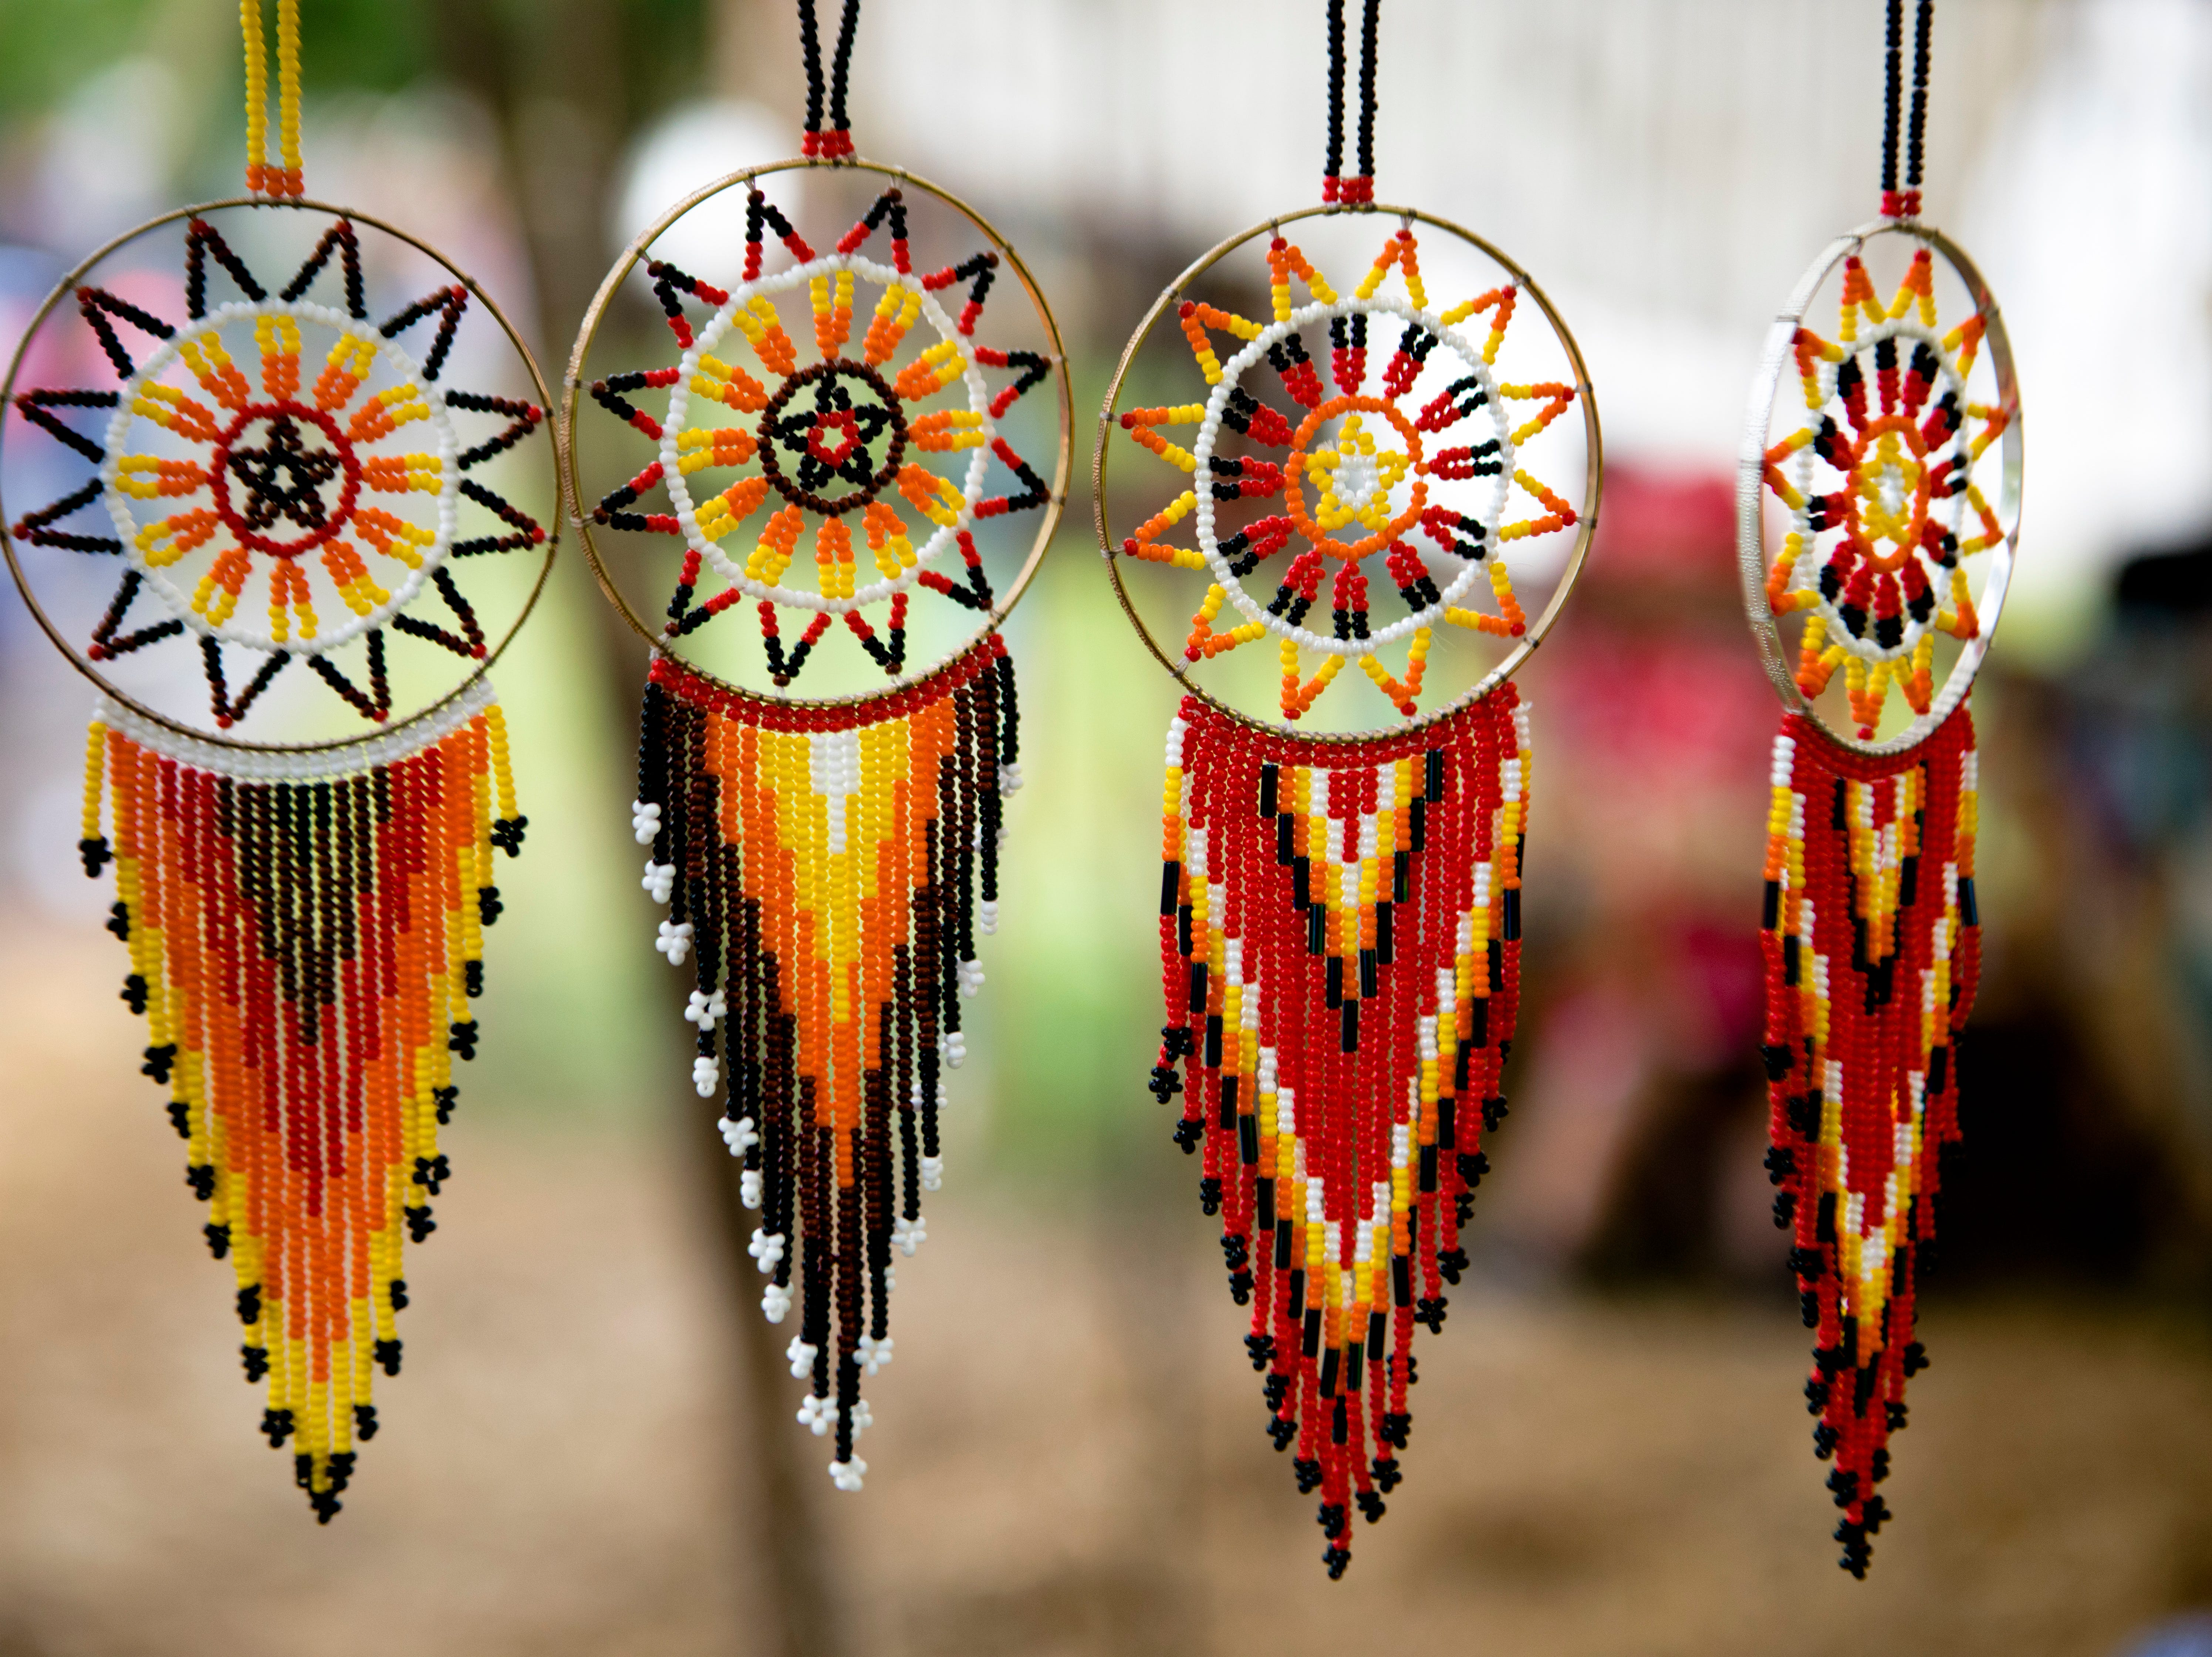 Dream catchers for sail in a tent at the 50th annual Appalachian Festival on Friday, May 10, 2019, At Coney Island in Cincinnati.